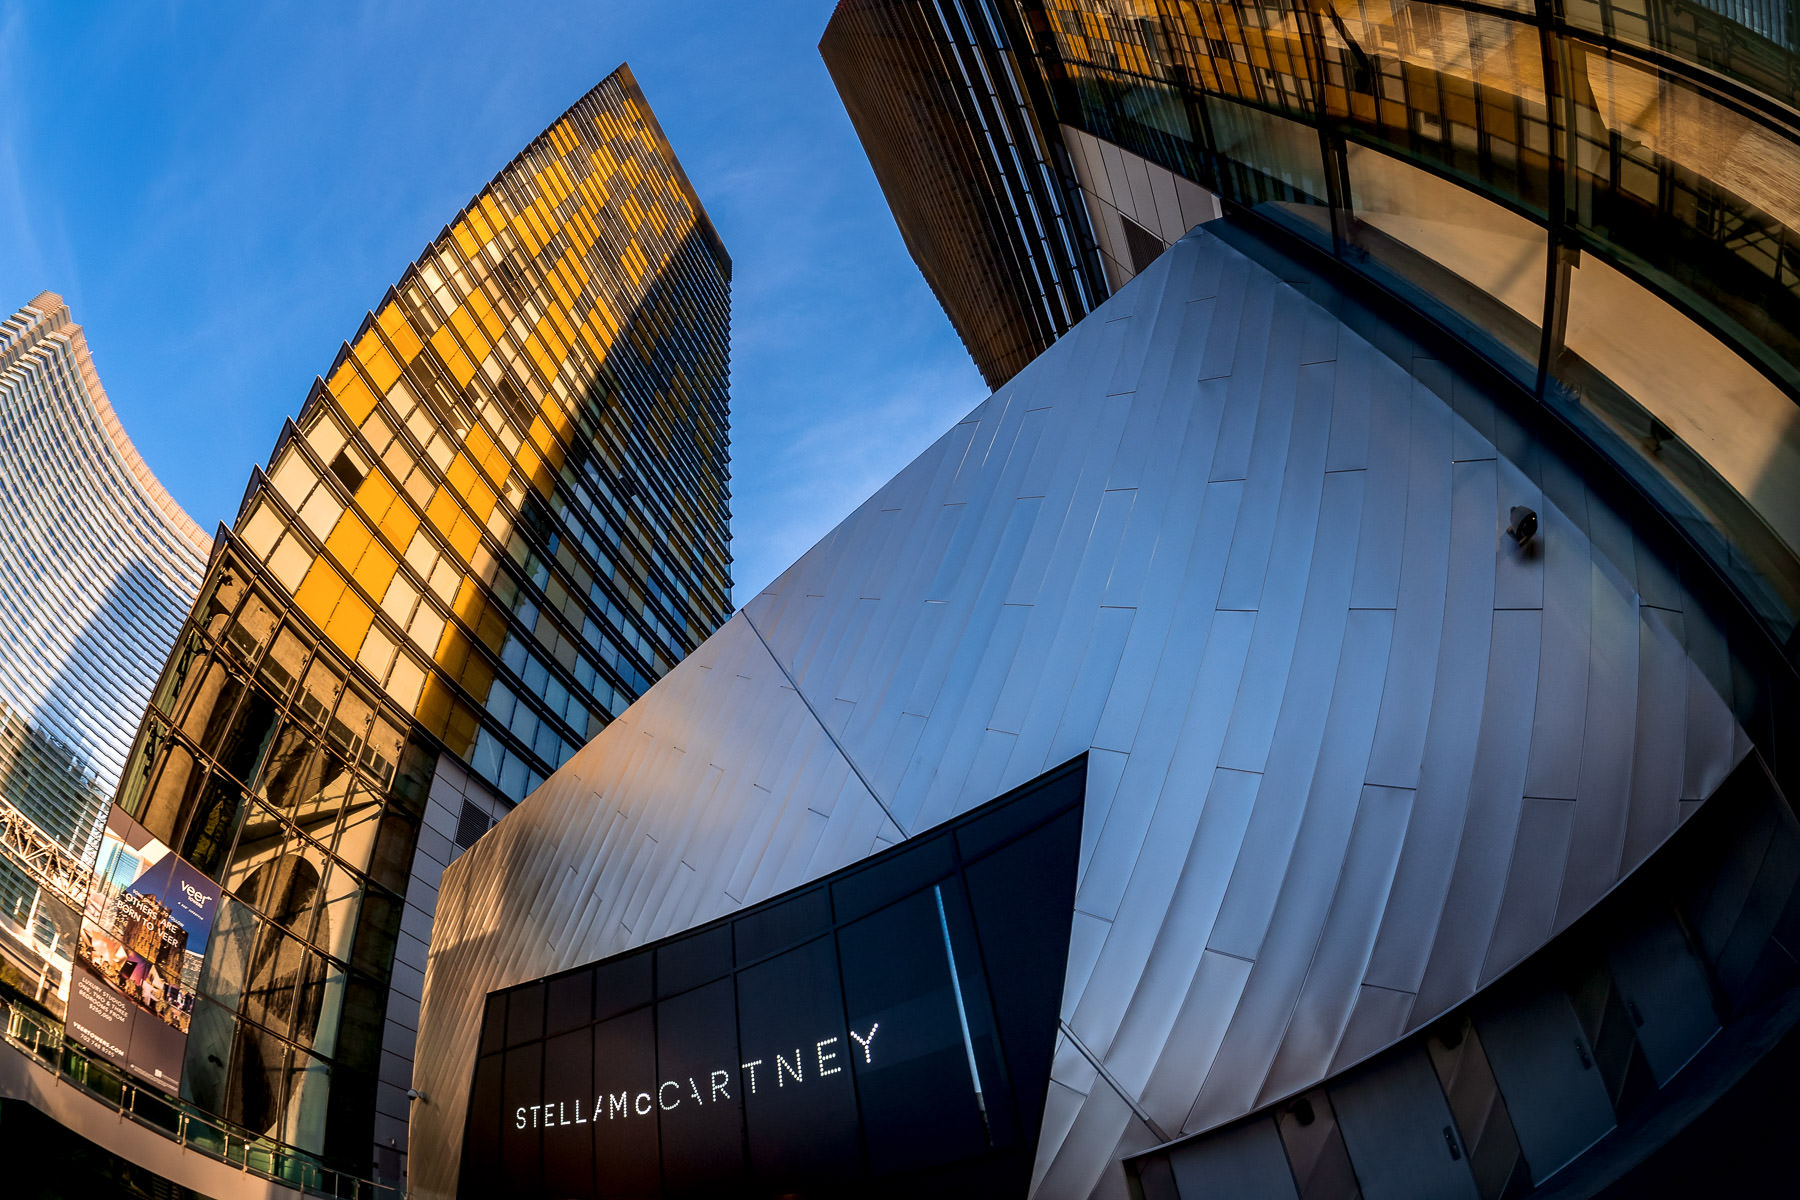 The Stella McCartney boutique at the Crystals in CityCenter Las Vegas is dwarfed by the adjacent Veer Towers.